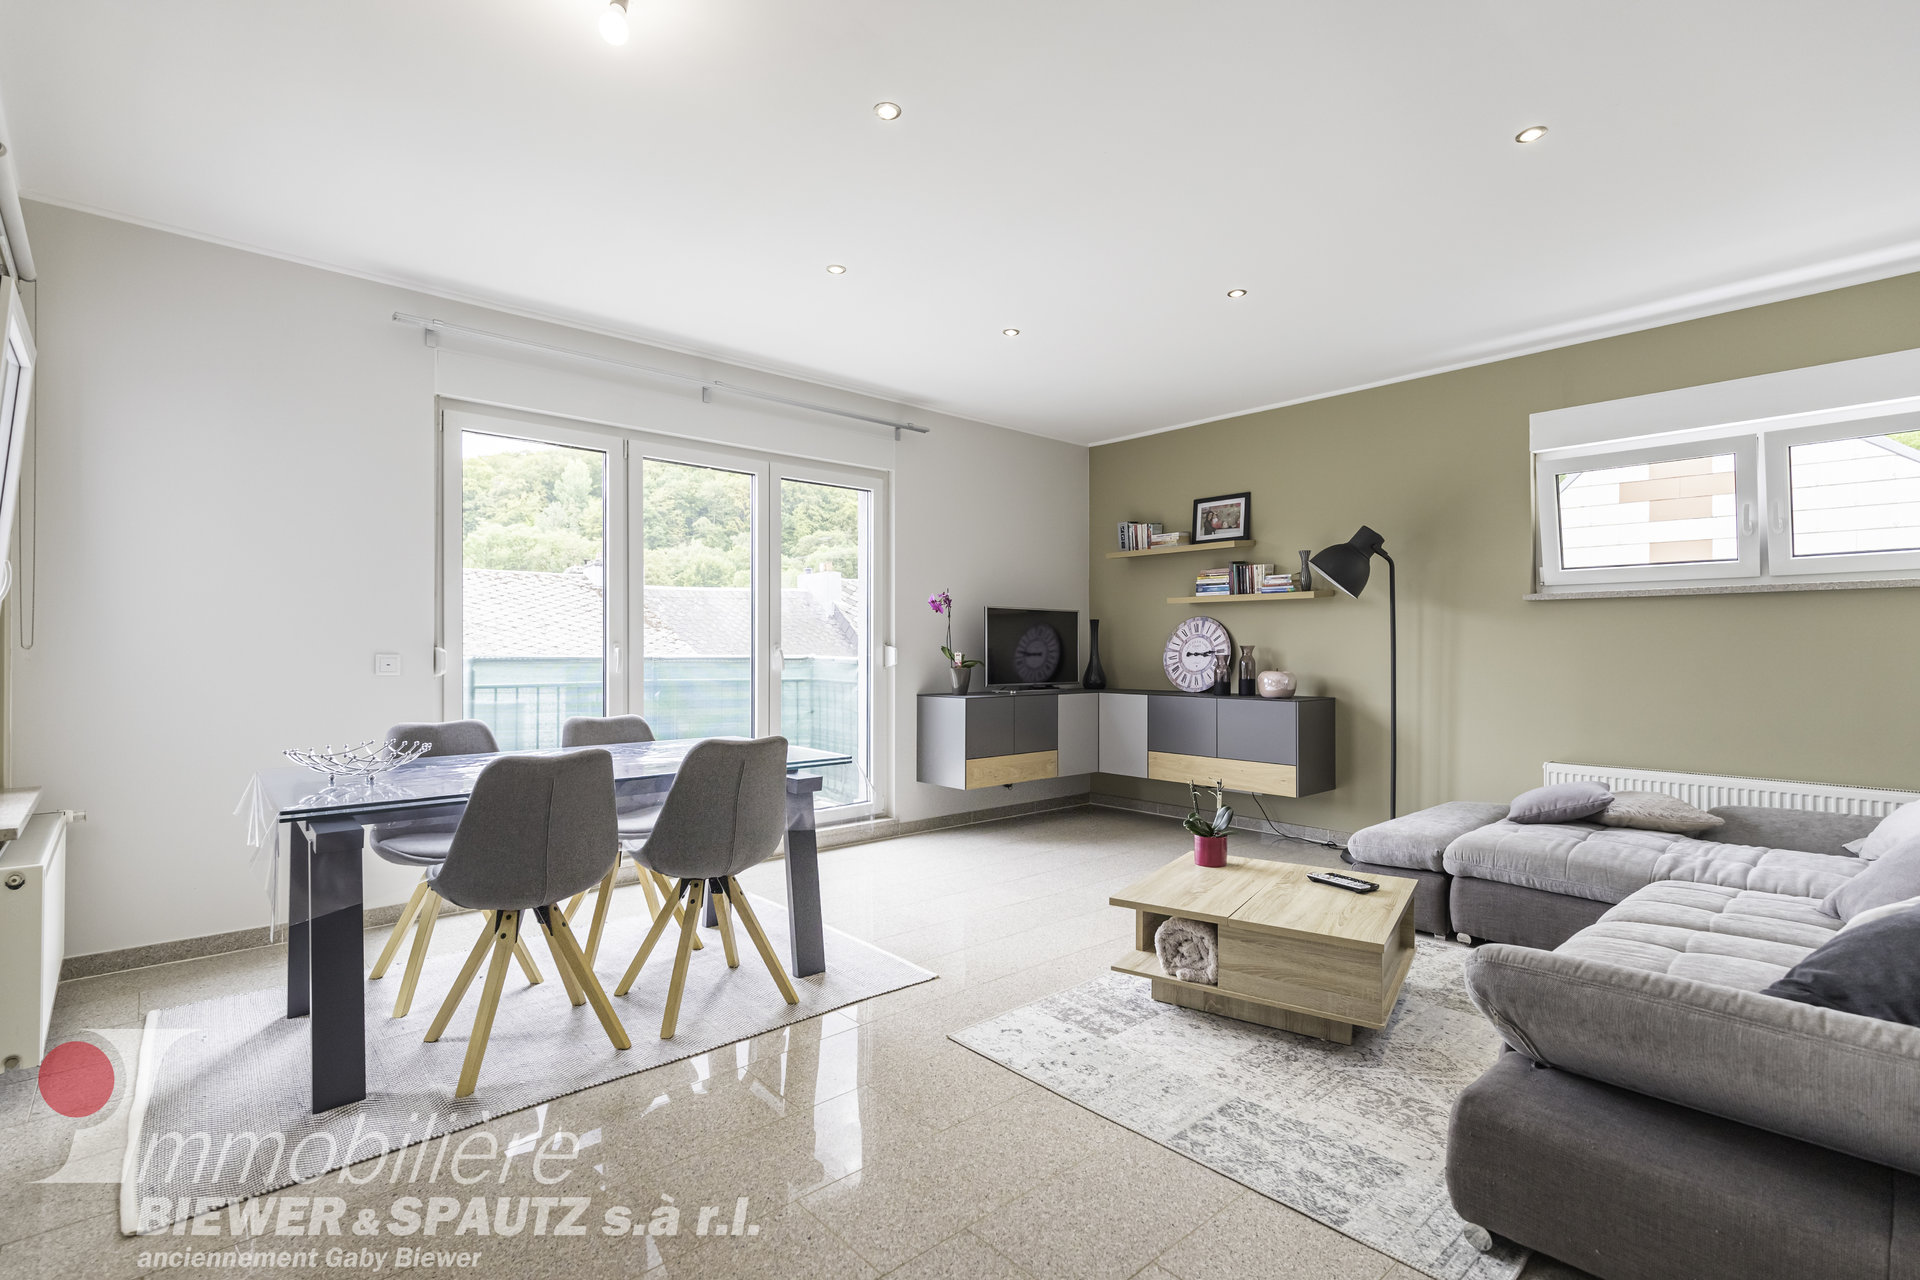 TO SELL - penthouse with 3 bedrooms in Niederkorn